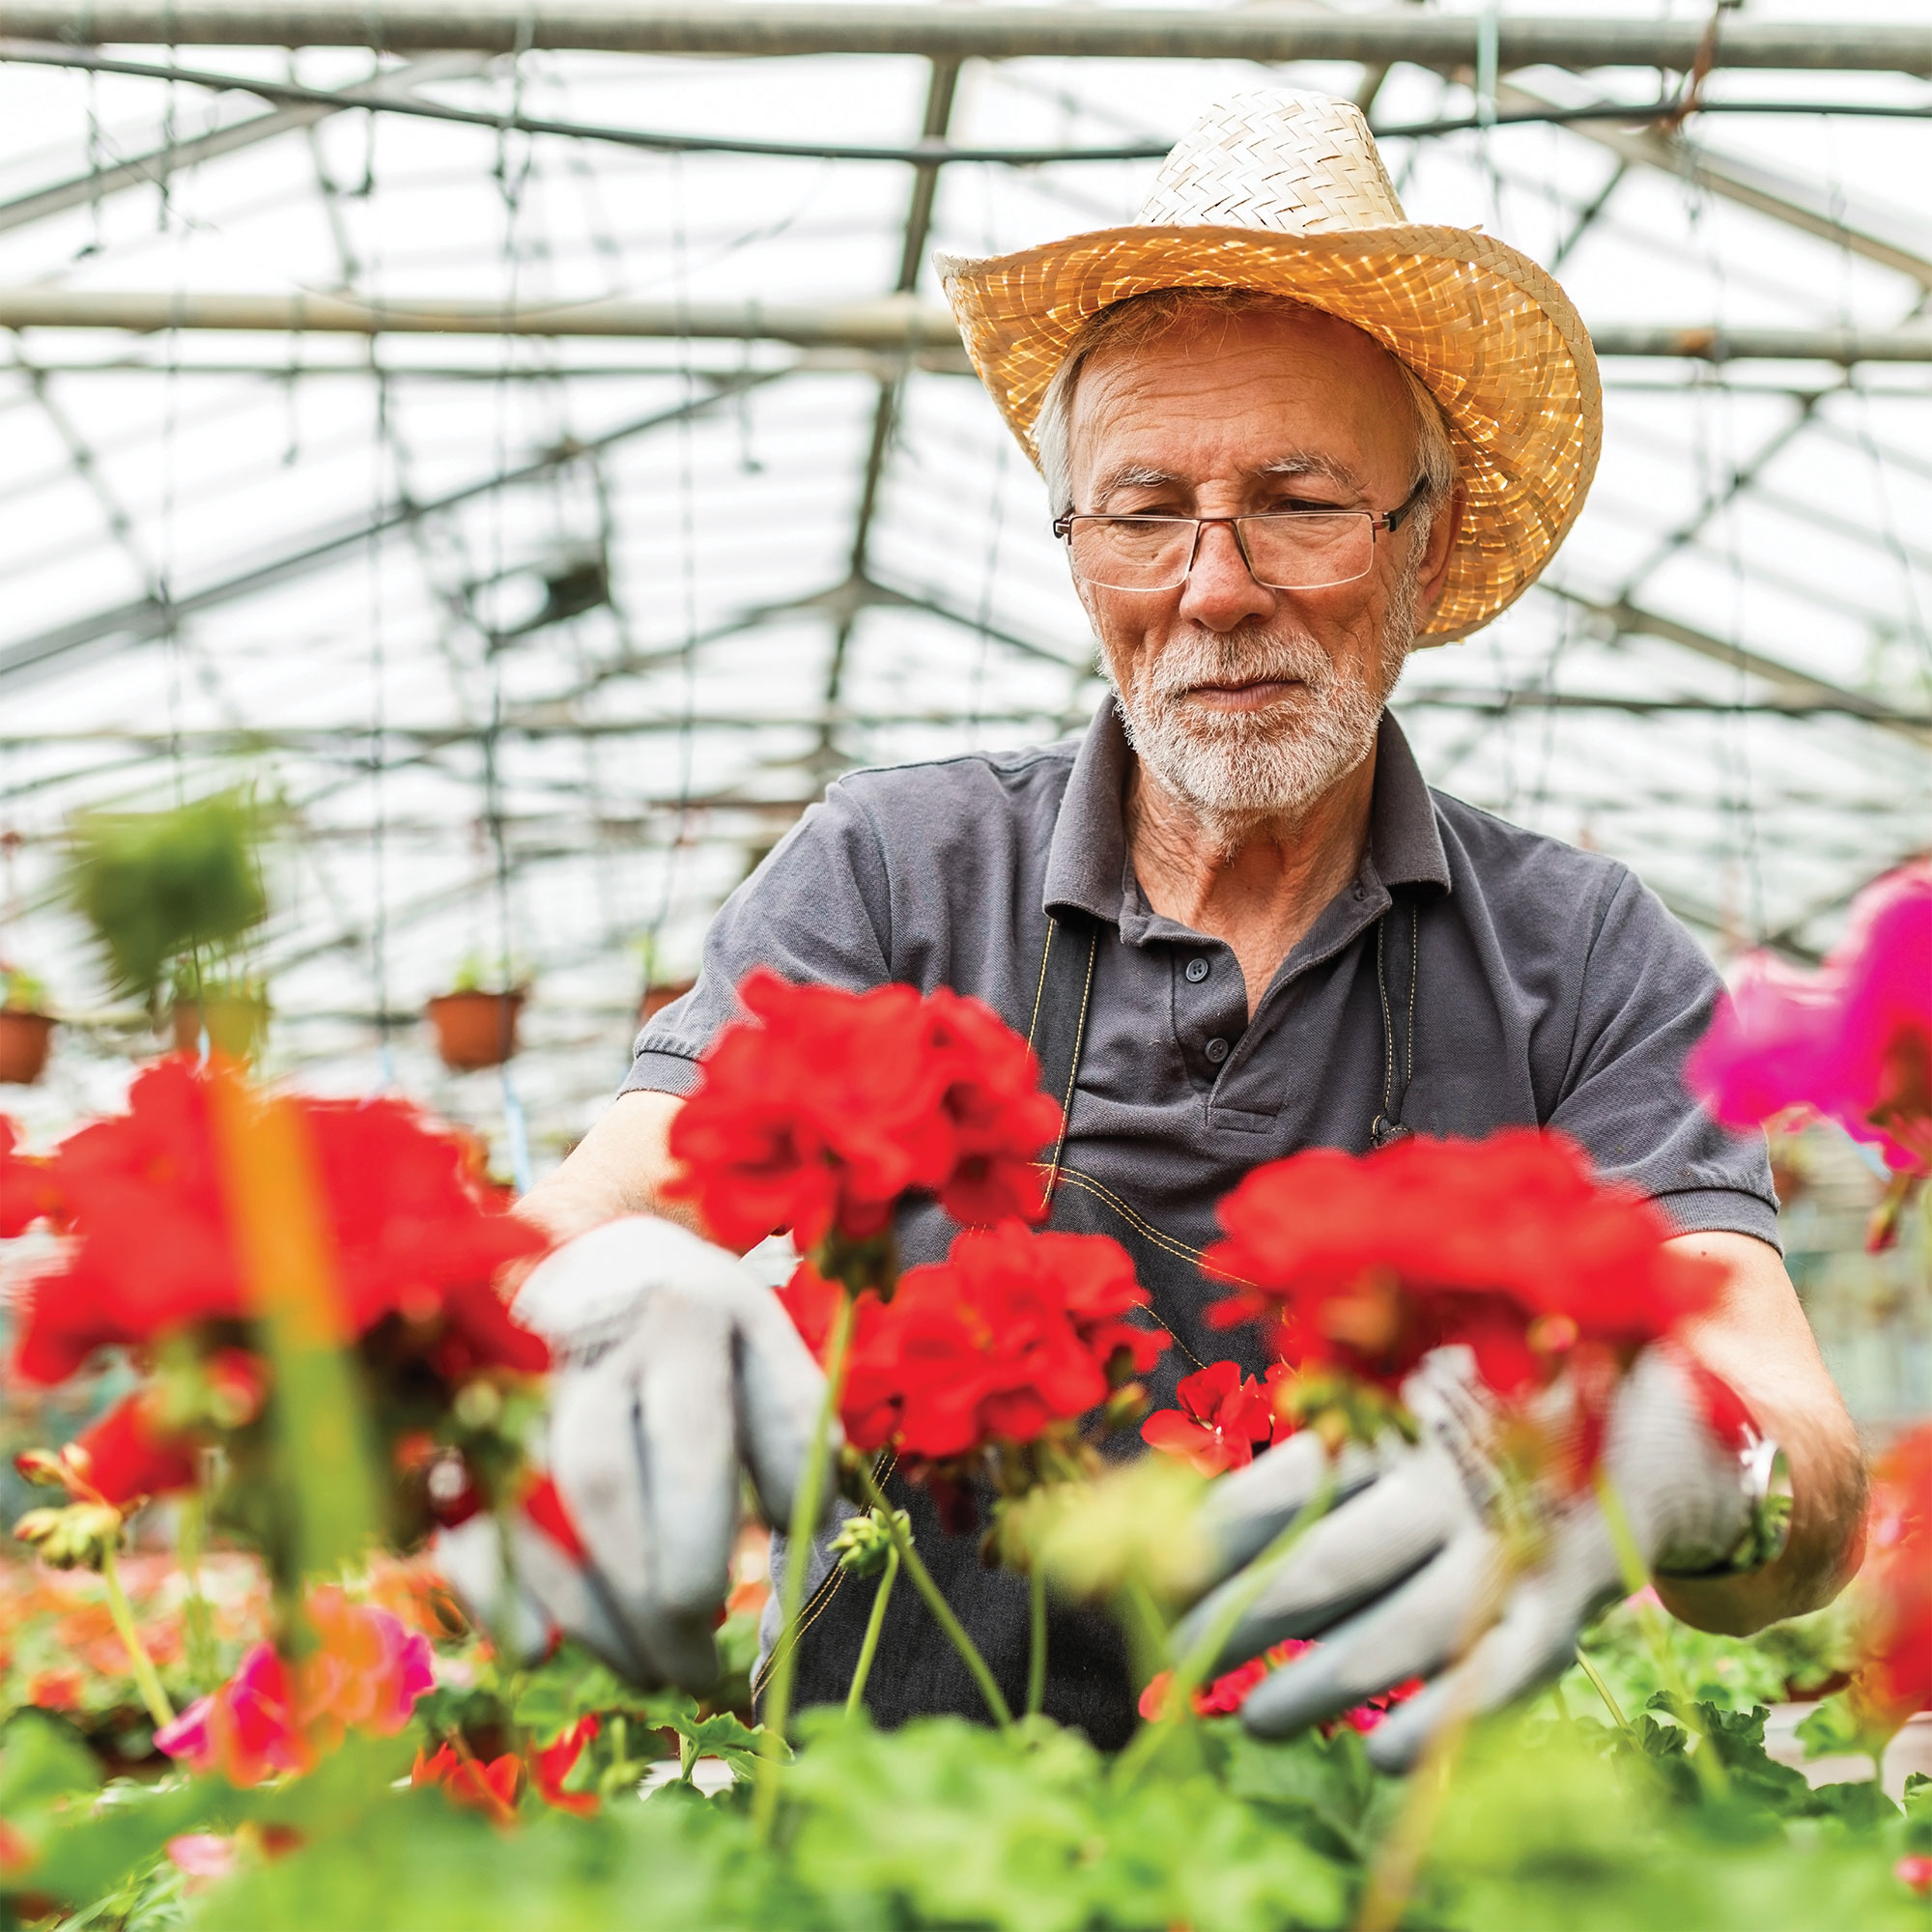 A gentleman in a straw hat tends to red carnations